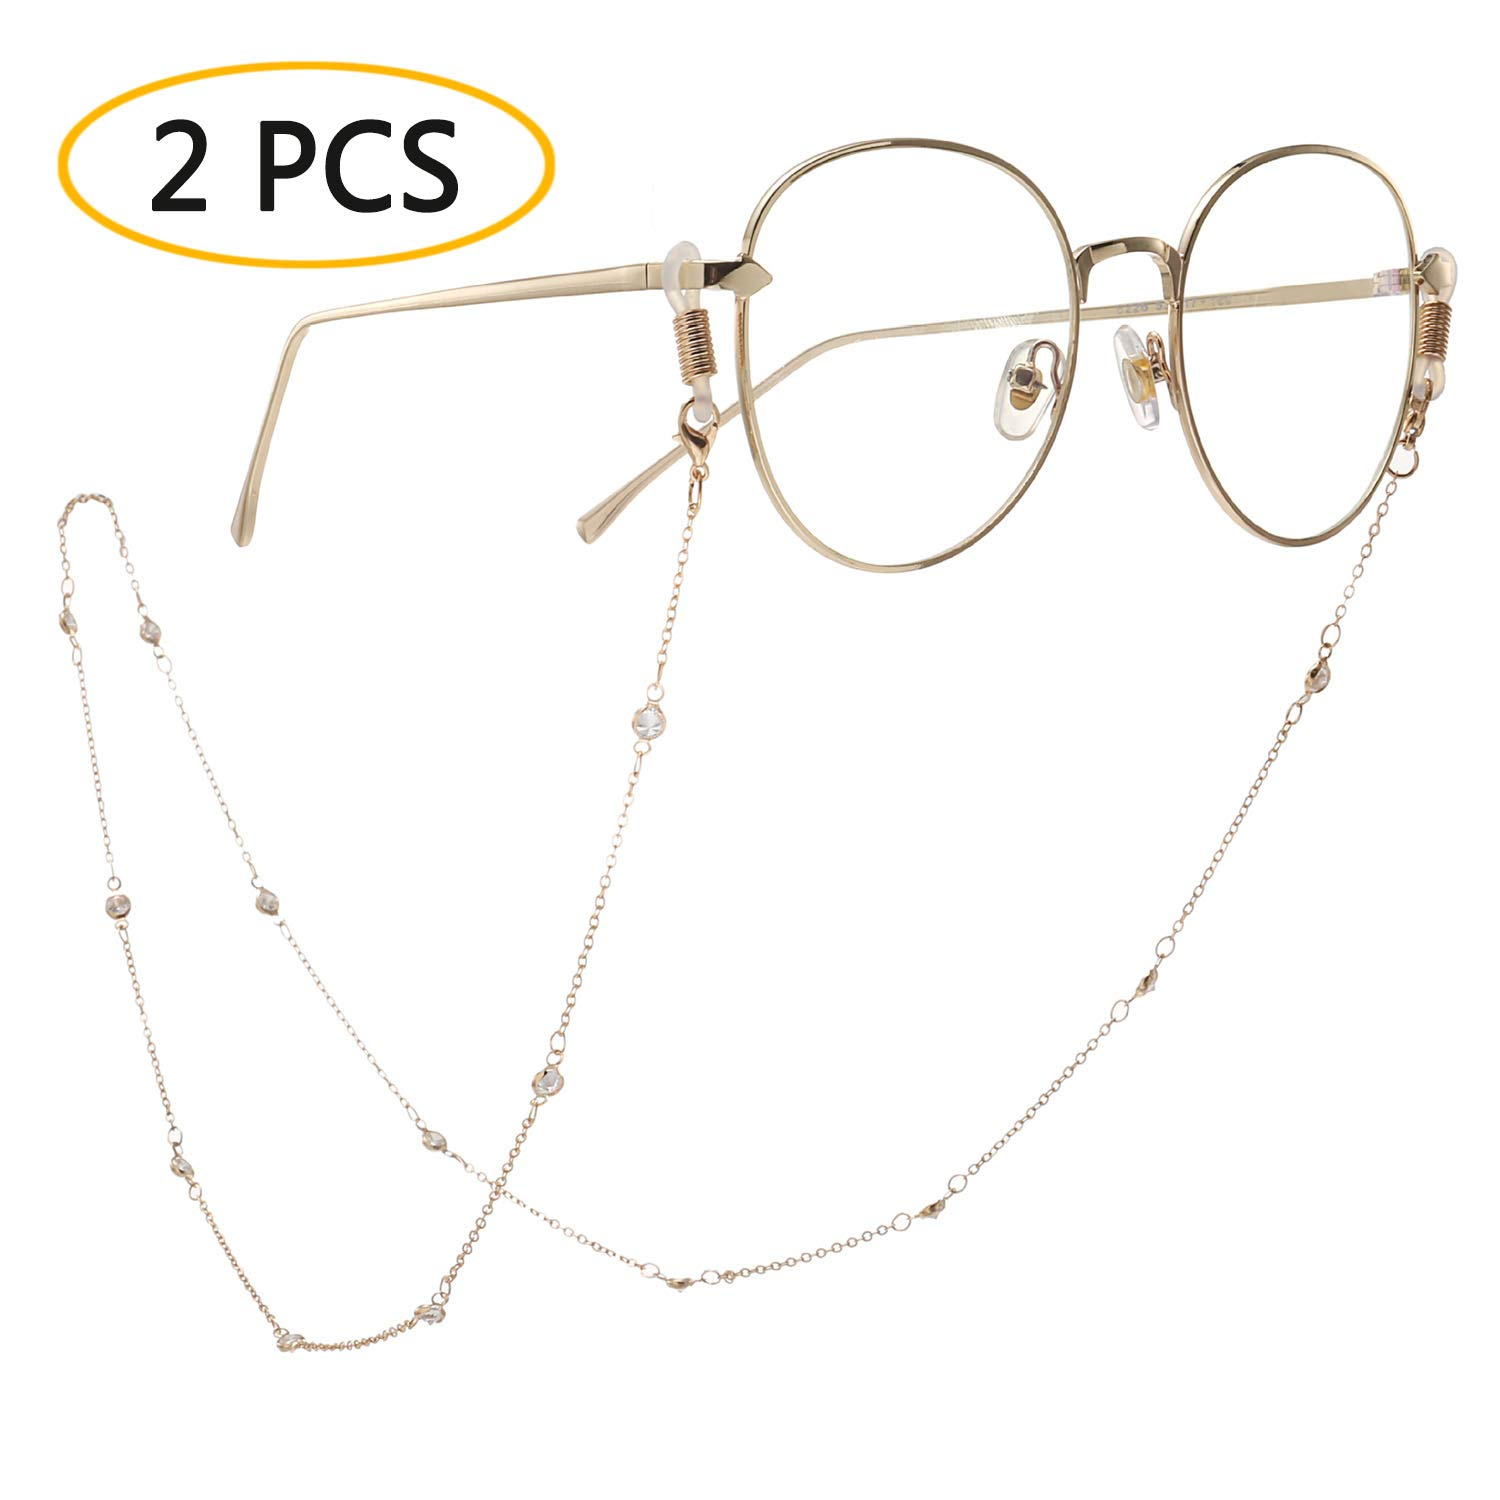 GoOpticians Classic Gold Traditional Fasten Glasses Cord Necklace Glasses Cord Spectacle Chain